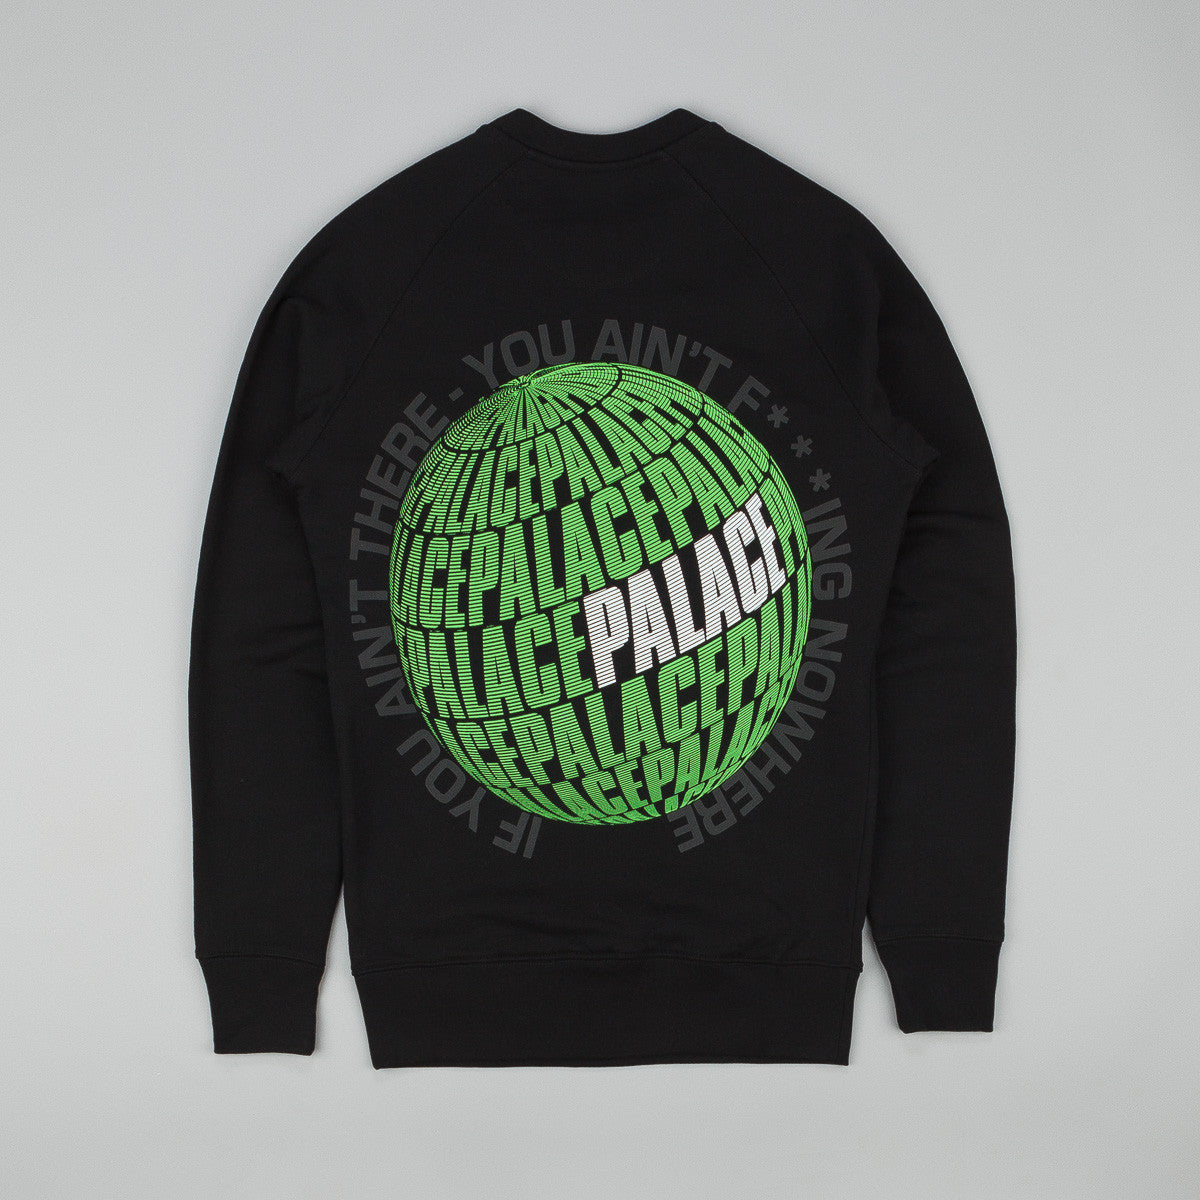 Palace If You Ain't There Crew Neck Sweatshirt - Black